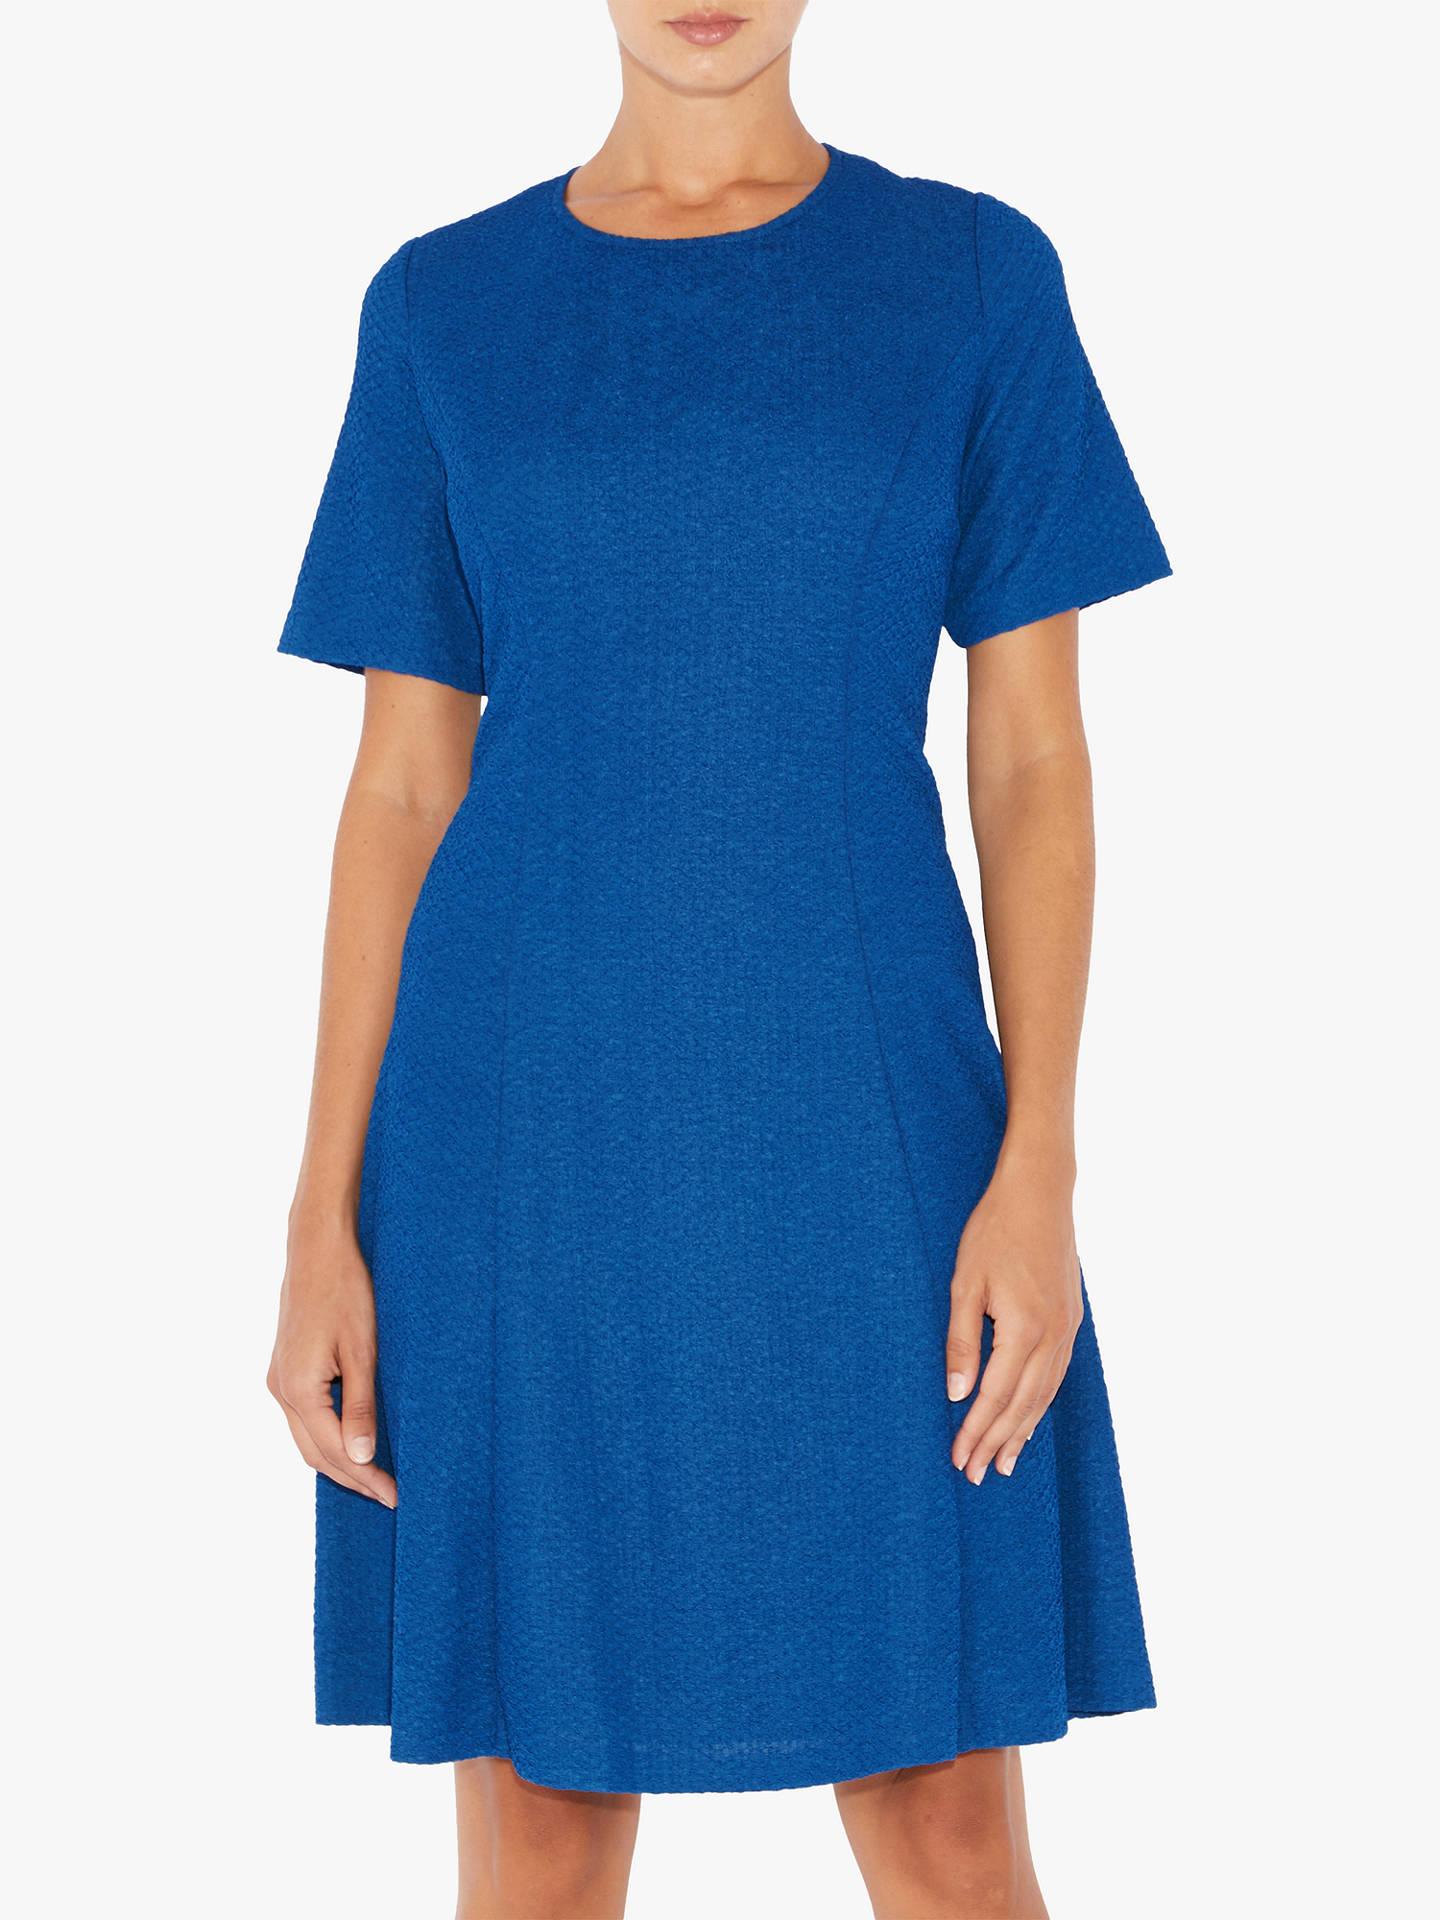 BuyAdrianna Papell Plus Size Textured Knit Flared Dress, Lapis, XXXL Online at johnlewis.com